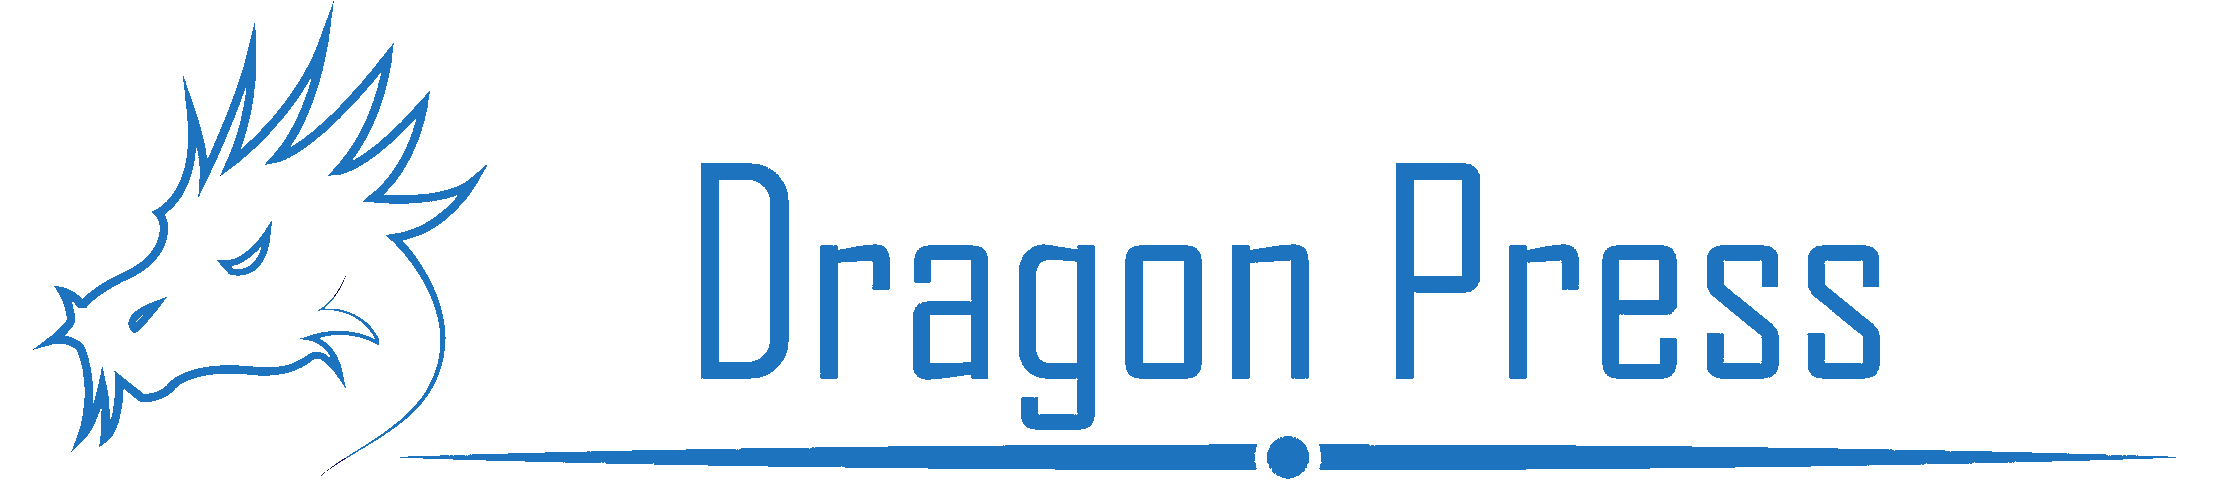 Dragon Press